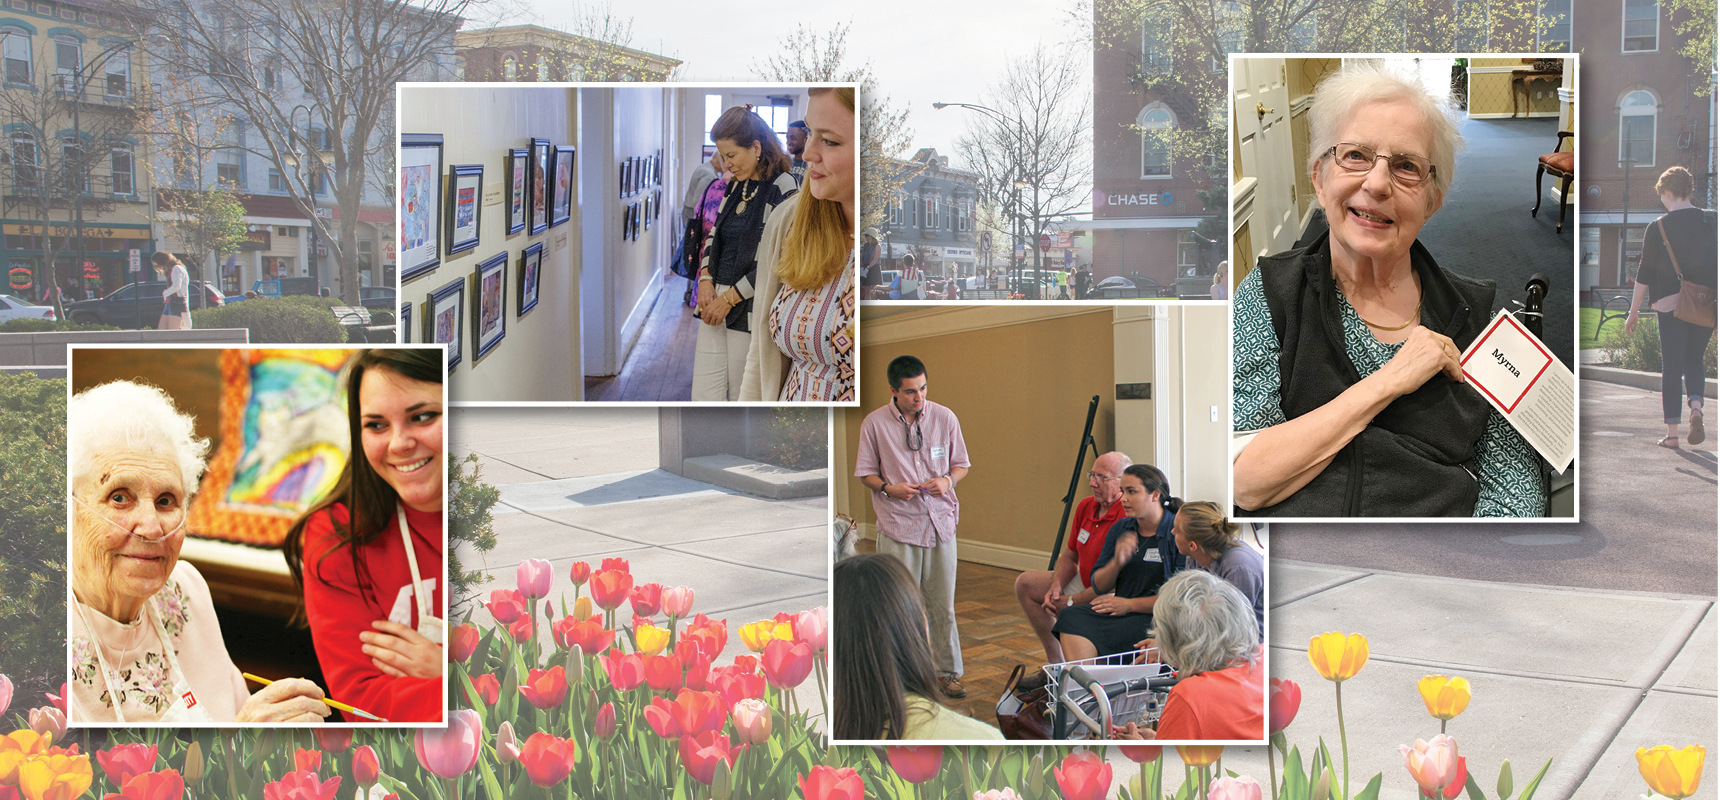 Images of the Oxford community. uptown oxford, a Miami student and an OMA artist, students giving a community presentation, families looking at a gallery at an OMA art show, and a nursing home resident showing off her PAL card